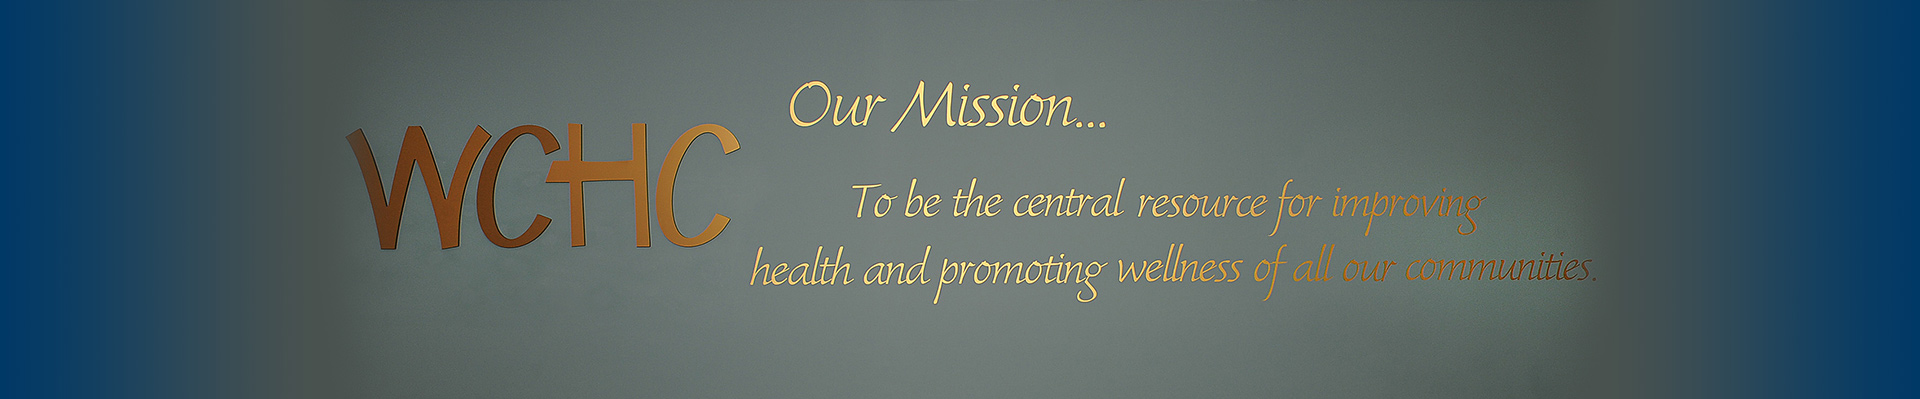 WCHC our mission.. to be the central resource for improving health and promoting wellness of all our communities.